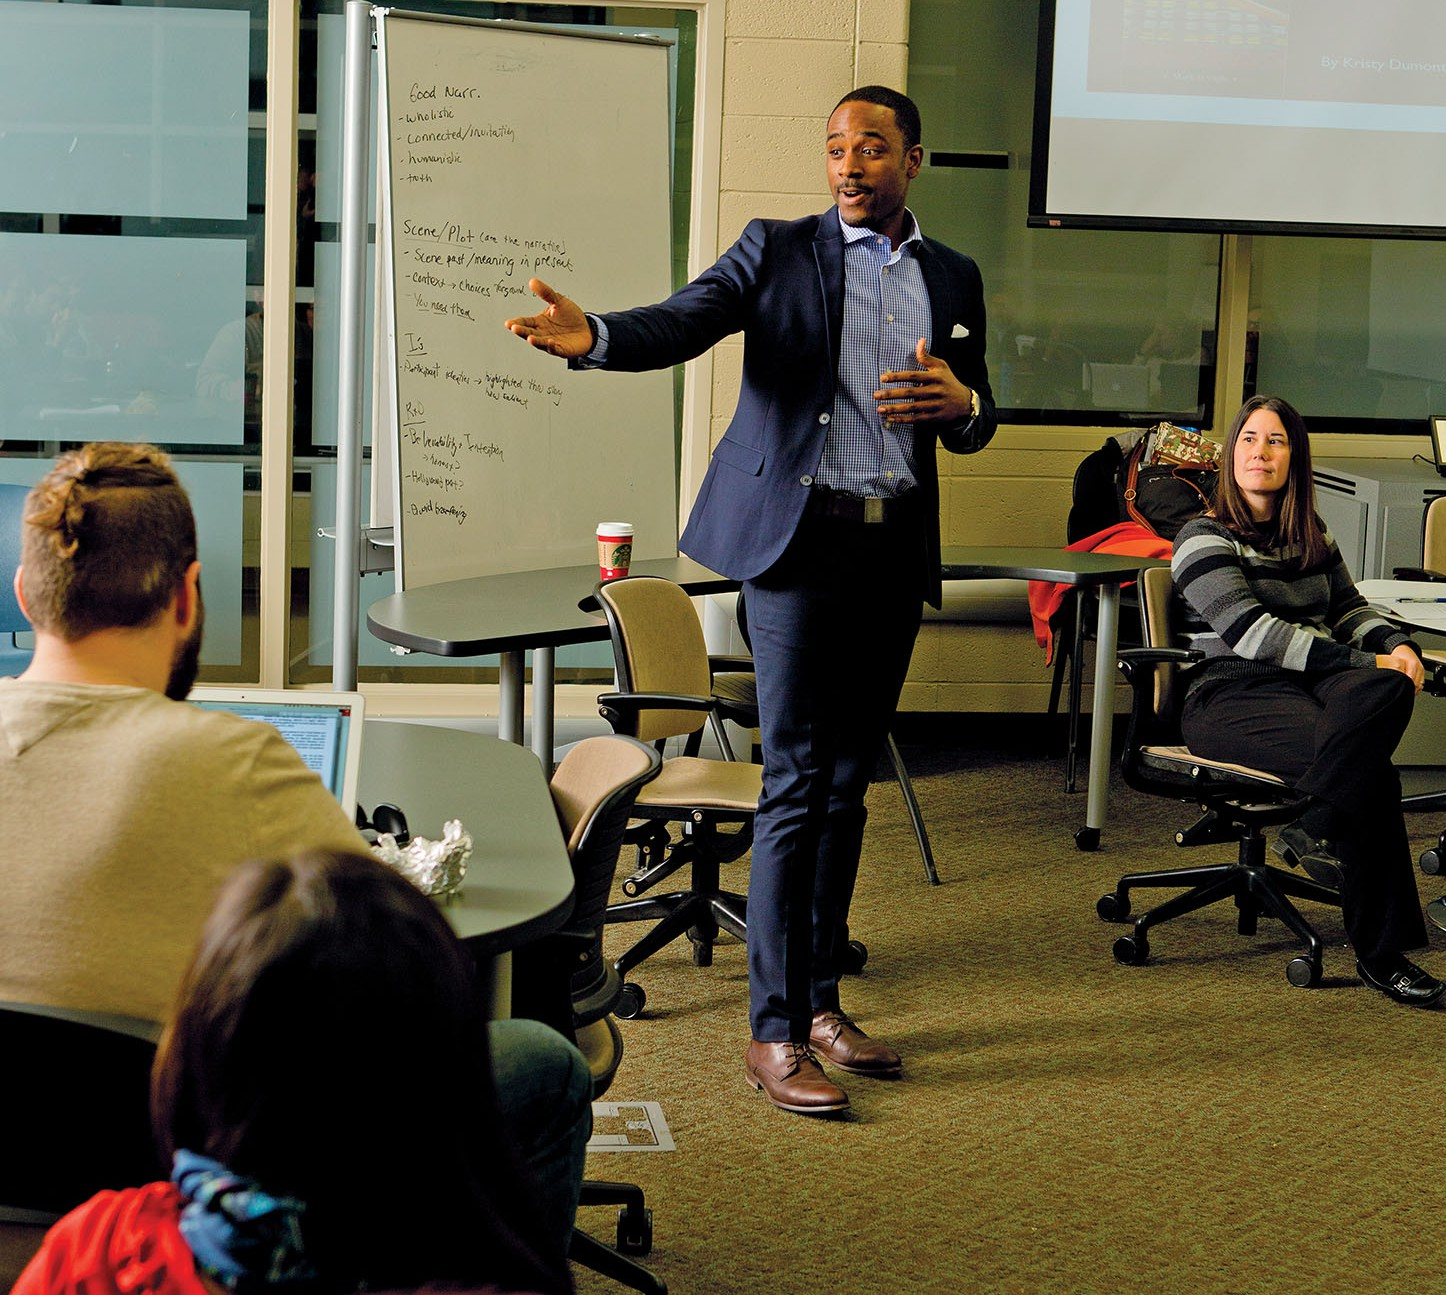 In-class presentations are now routine events for Range, who earned his bachelor's degree at Wilberforce University and a master's degree in higher education policy and organizational leadership at the University of Illinois. Here, he participates in a graduate-level class in education research at Michigan State.